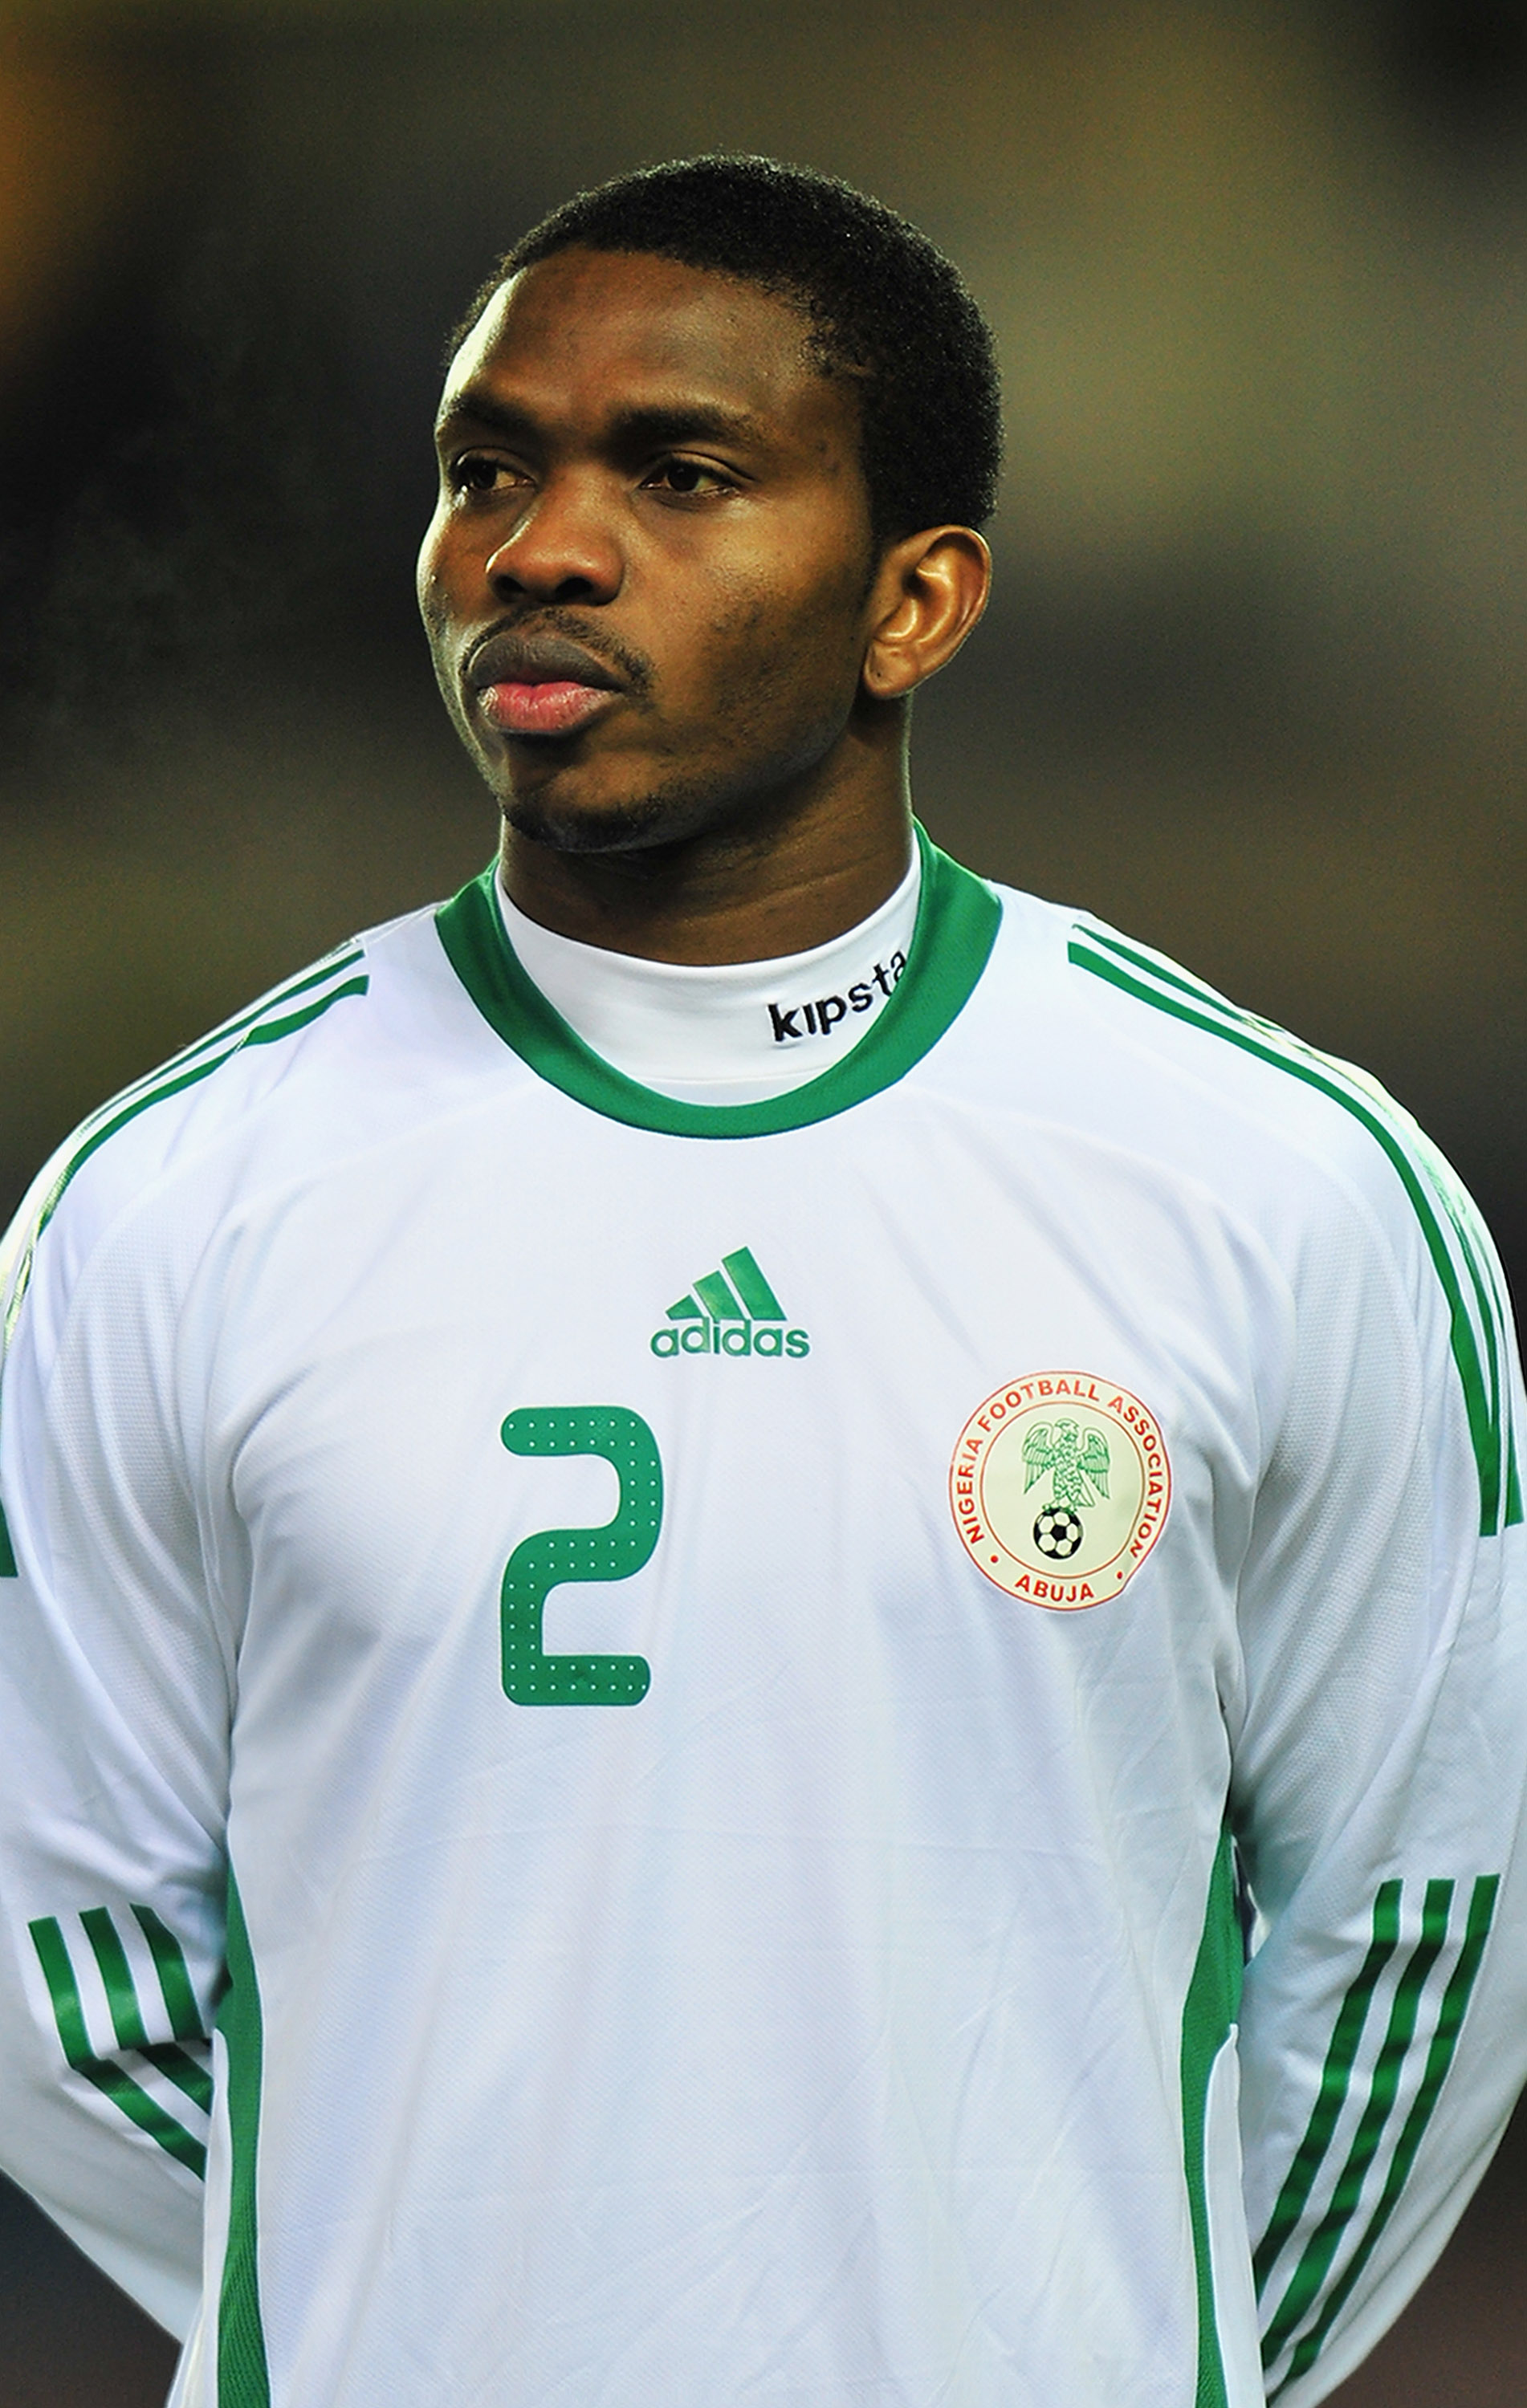 Joseph Yobo. Photo credit: FIFA.com